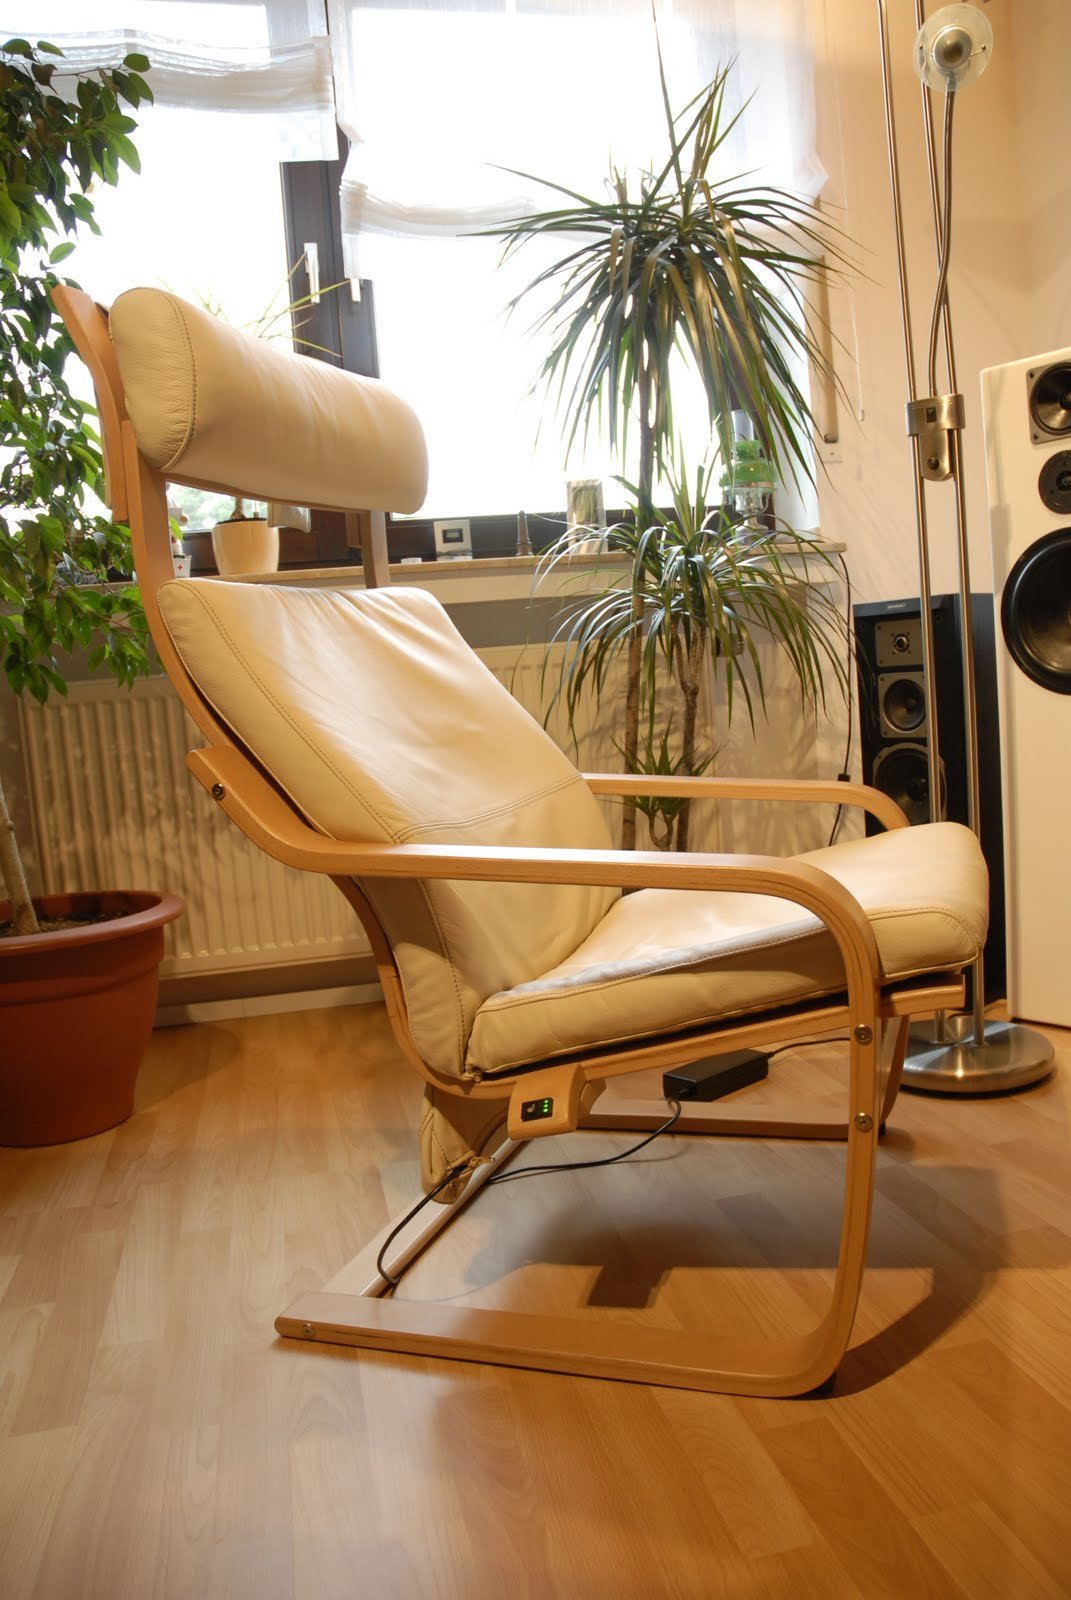 Ikea leather chair brown - Get Into The Hot Seat